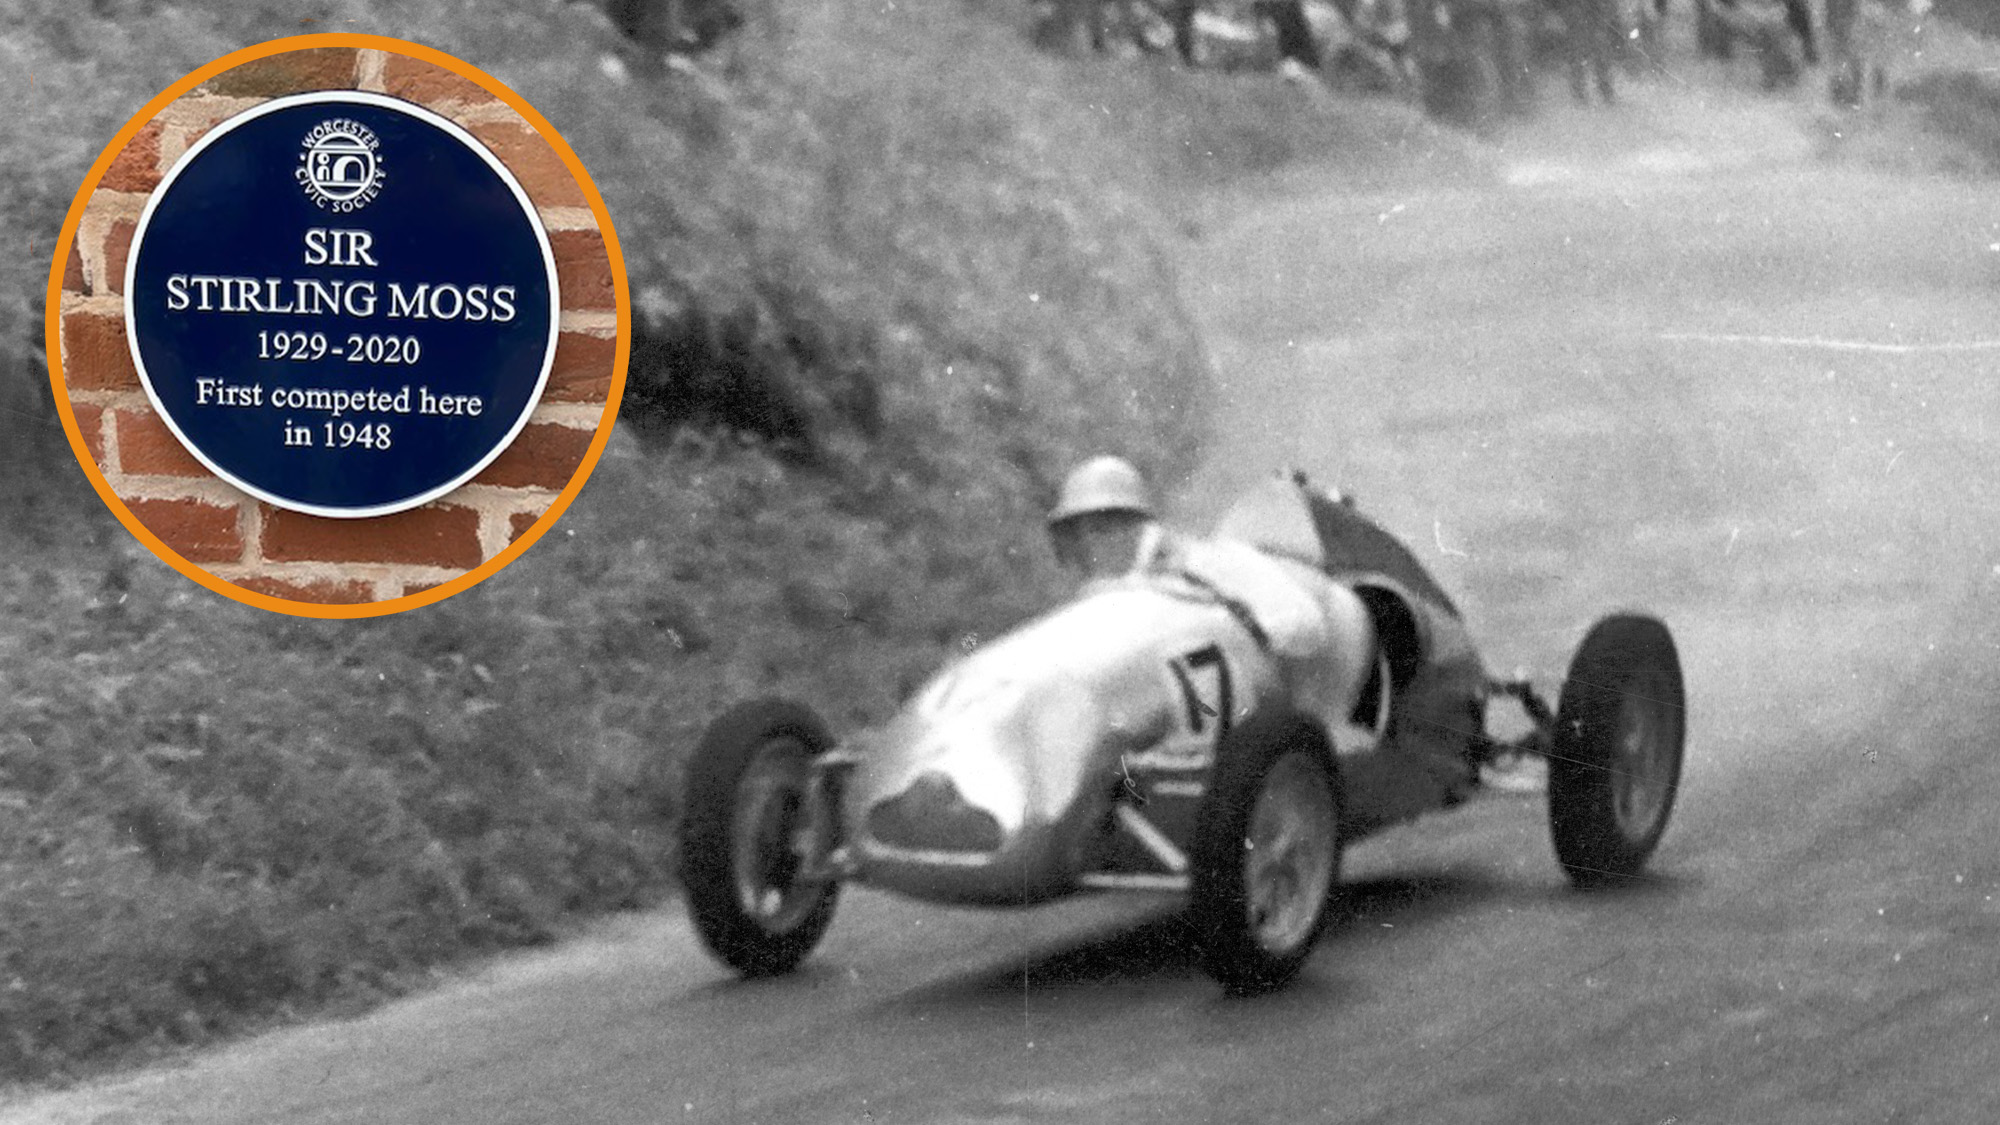 Blue plaque unveiled at Shelsley Walsh in honour of Sir Stirling Moss